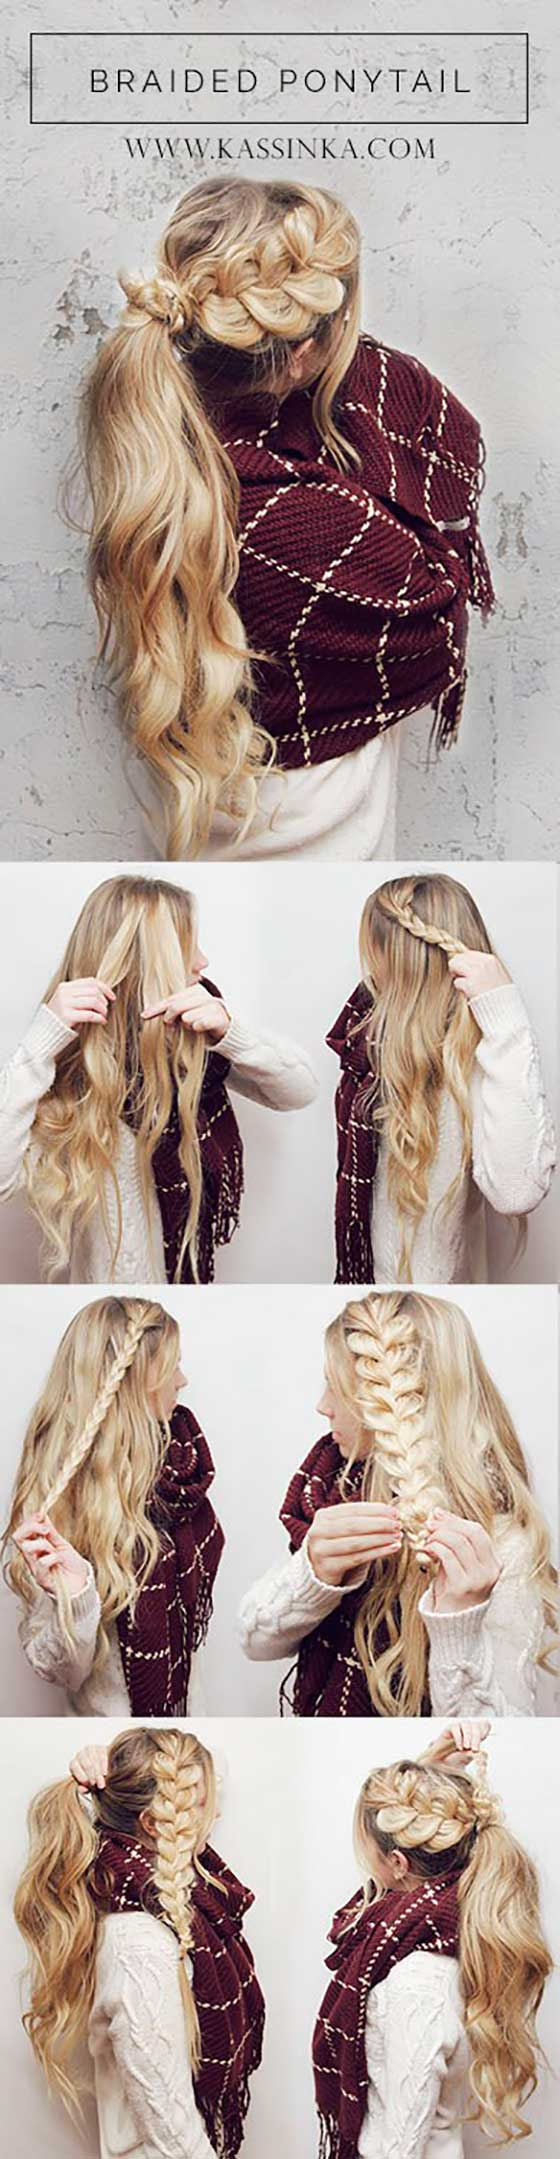 Pancaked-Braided-Ponytail